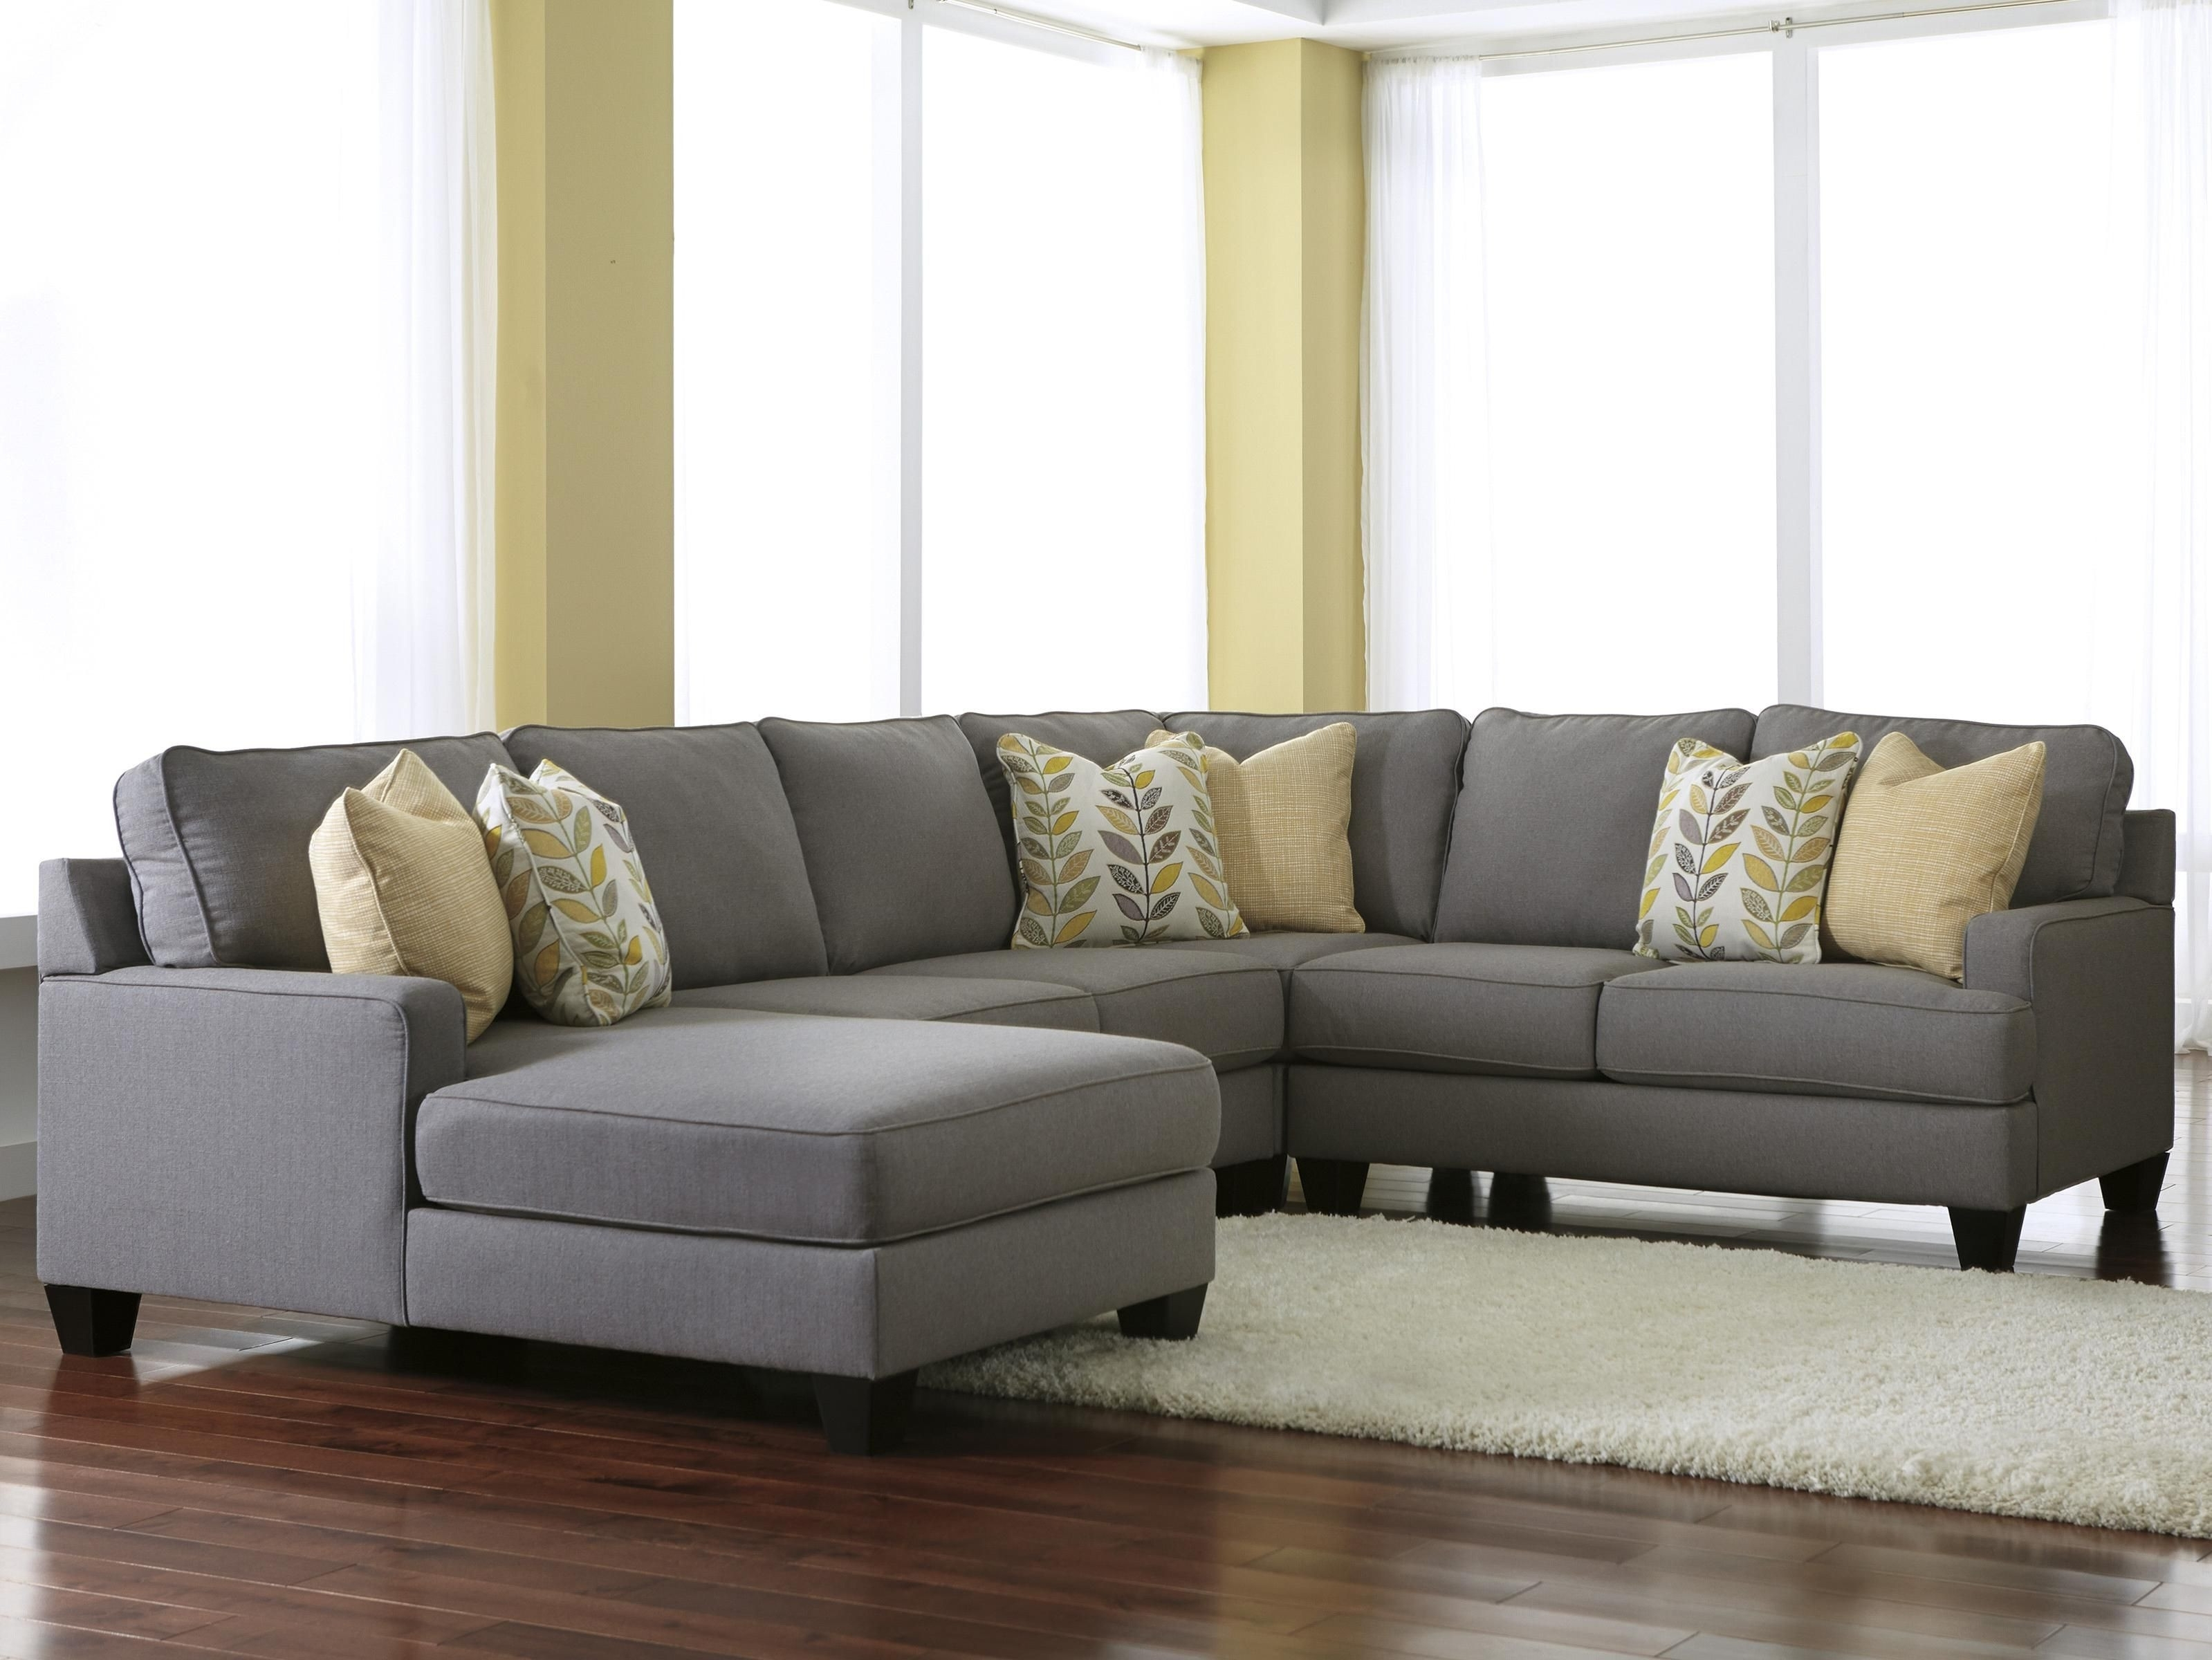 39 Collection Sectional Living Room Ideas Graphics | Living Room pertaining to Aquarius Light Grey 2 Piece Sectionals With Laf Chaise (Image 3 of 30)